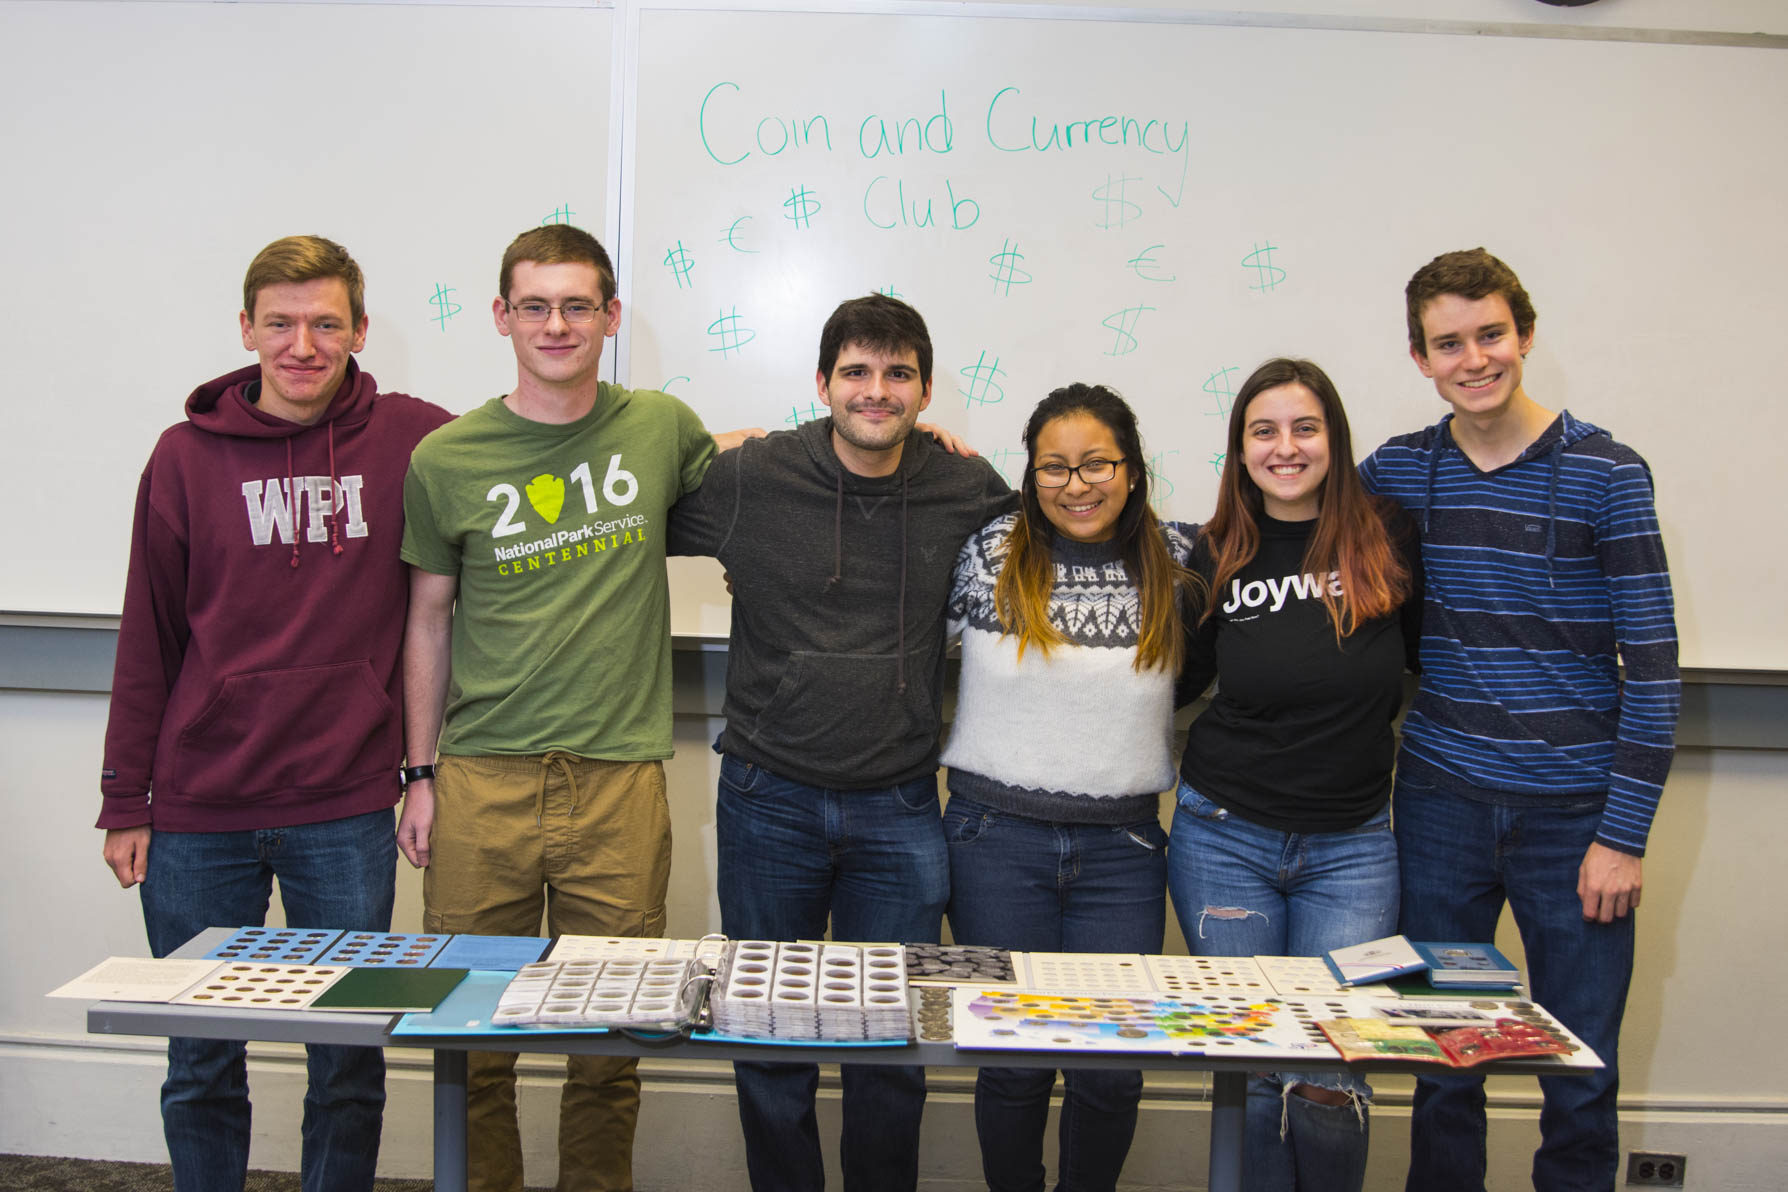 Members of the Coin & Currency Club gather in front of a table covered in binders full of coins. Their club name is written on the whiteboard behind them.